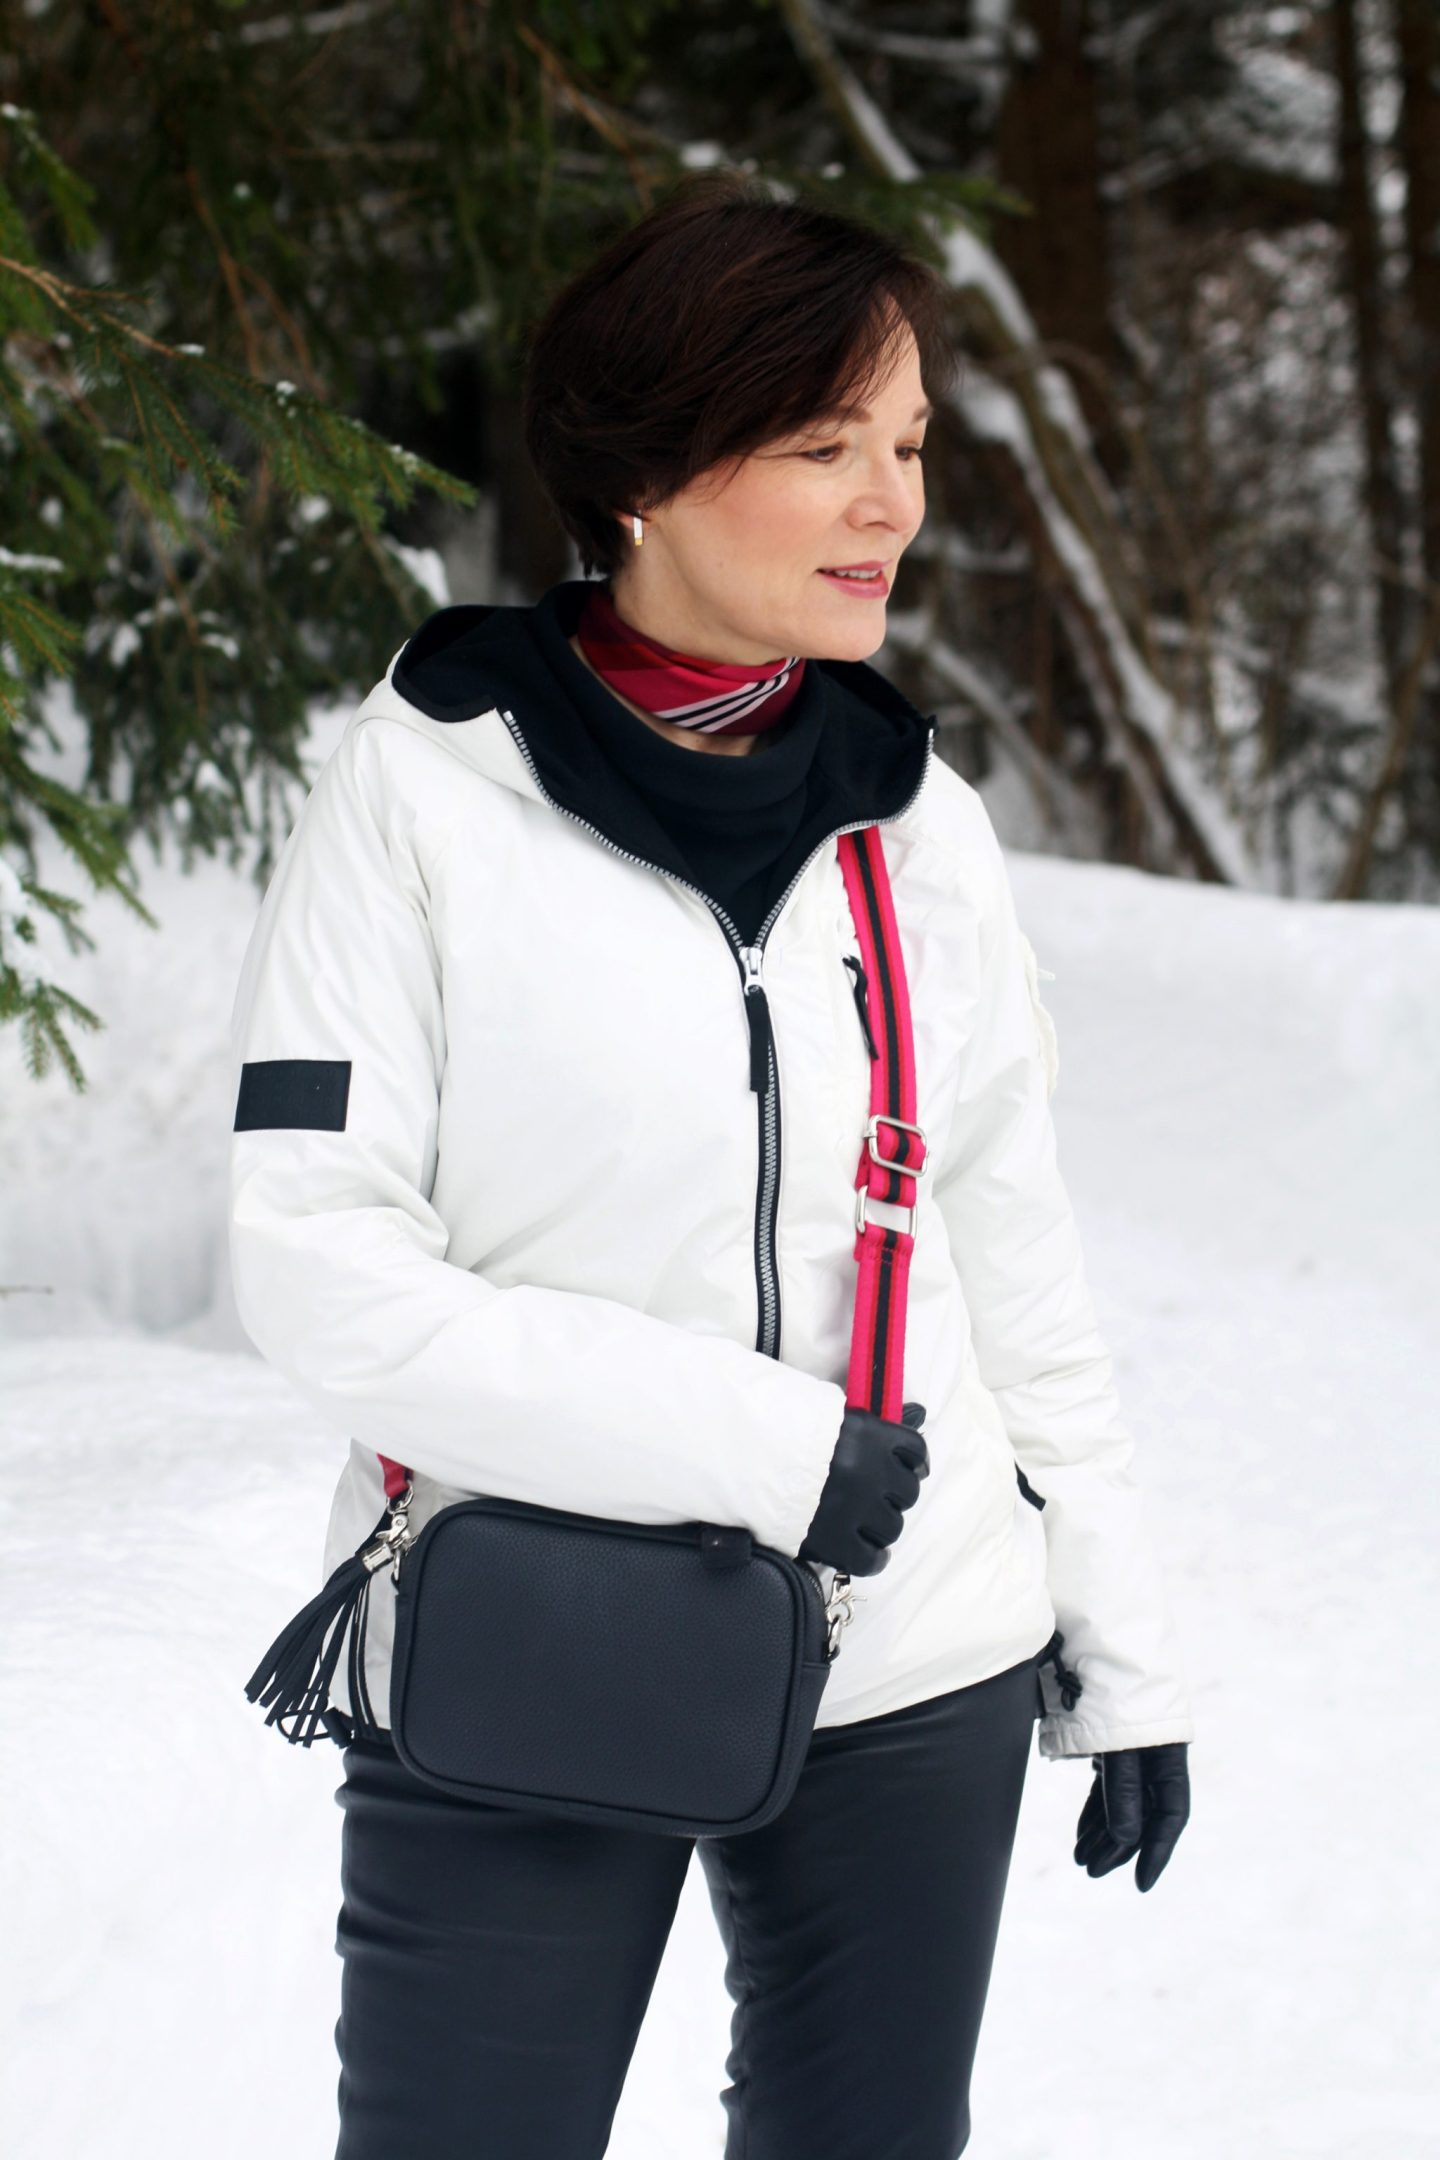 Winter Schnee Bayern Outdoors Anorak 50plus Blogger LadyofStyle